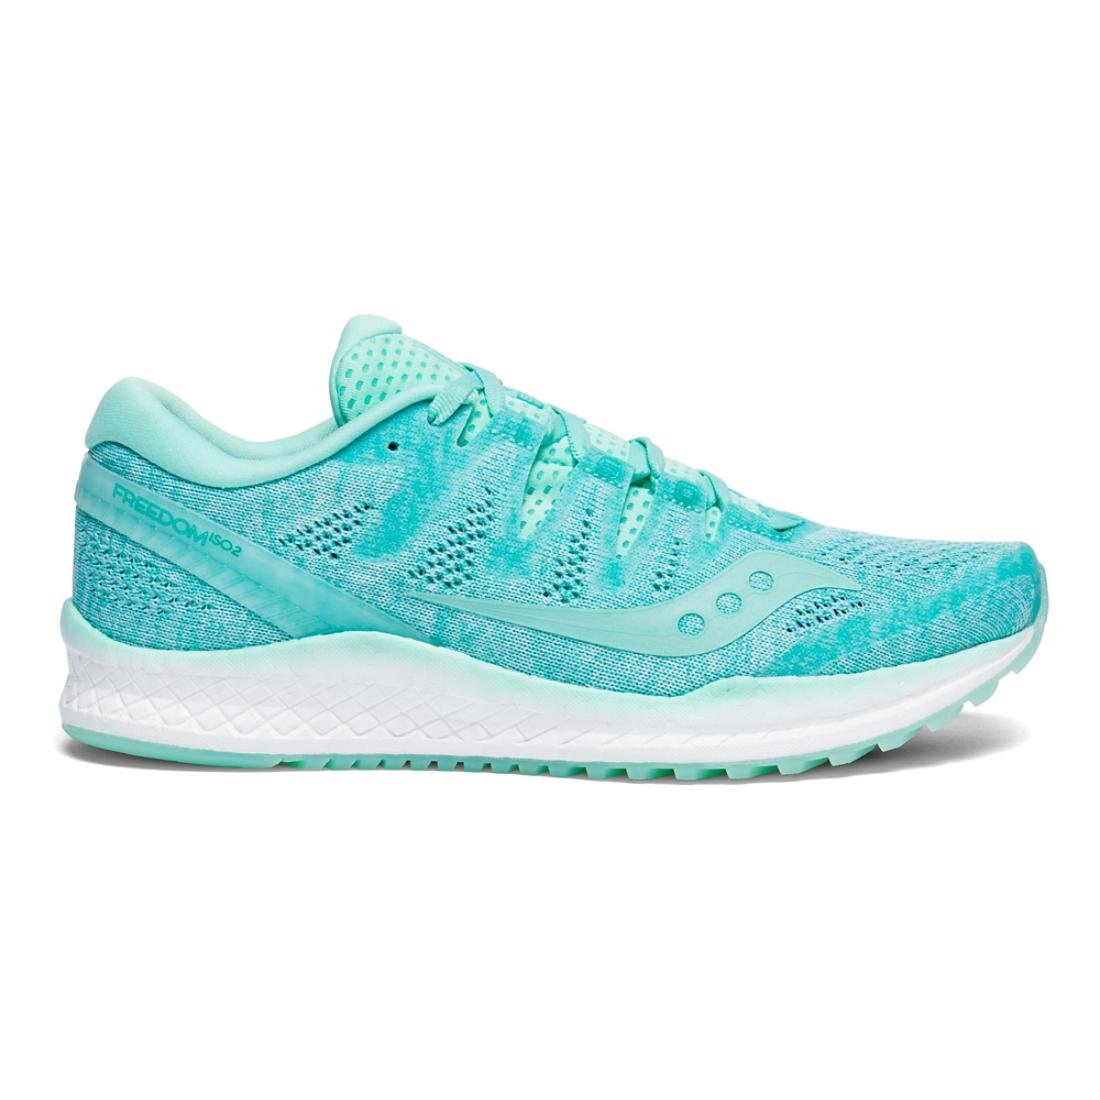 Saucony Women's Freedom ISO 2 Running Shoes B078PP7W5S 11.5 B(M) US|Aqua